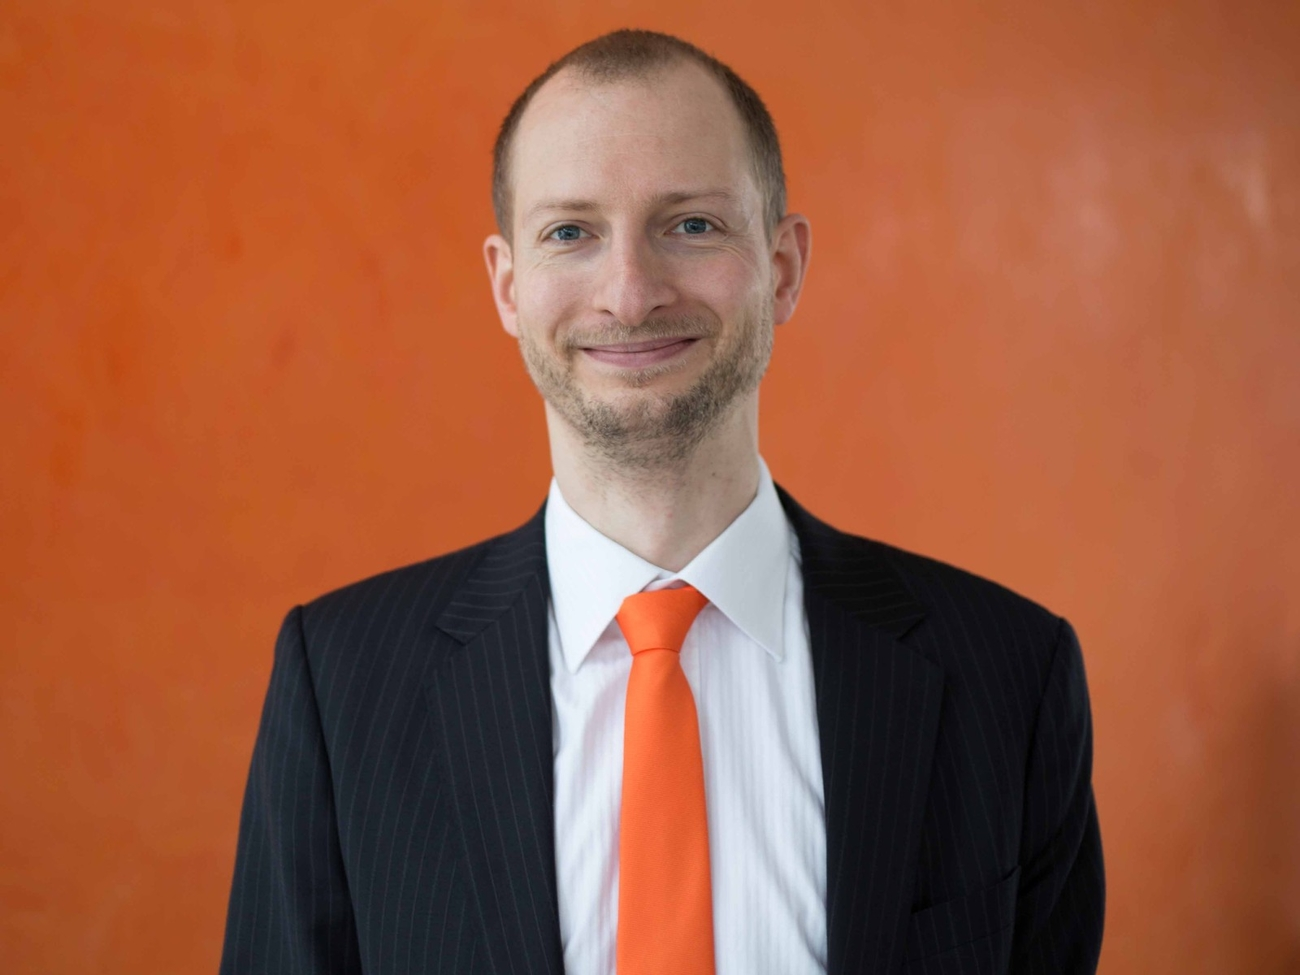 Sixt holt Manager von Booking.com